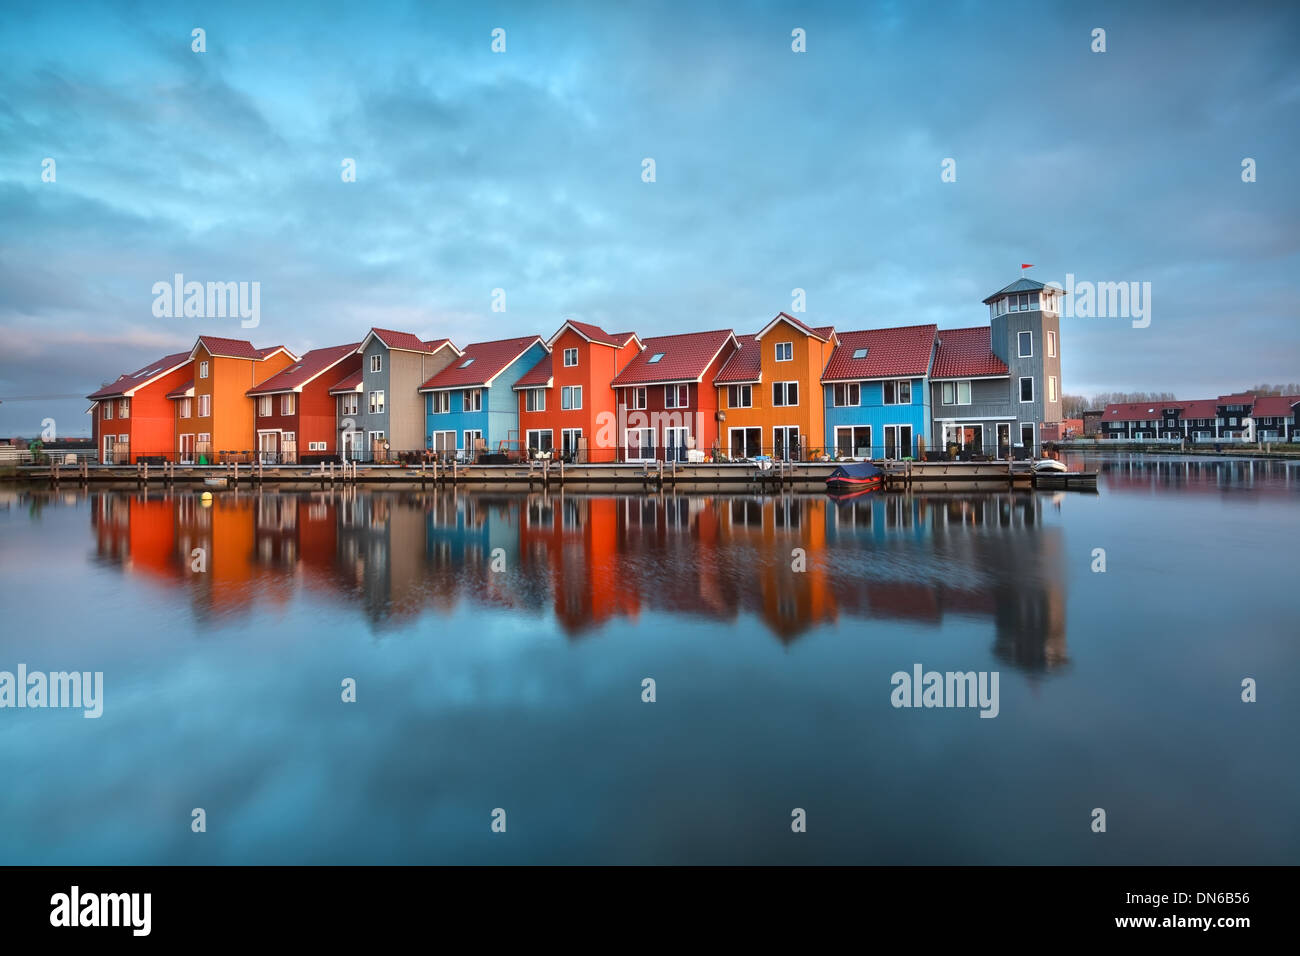 colorful buildings on water at sunrise, Groningen, Netherlands - Stock Image